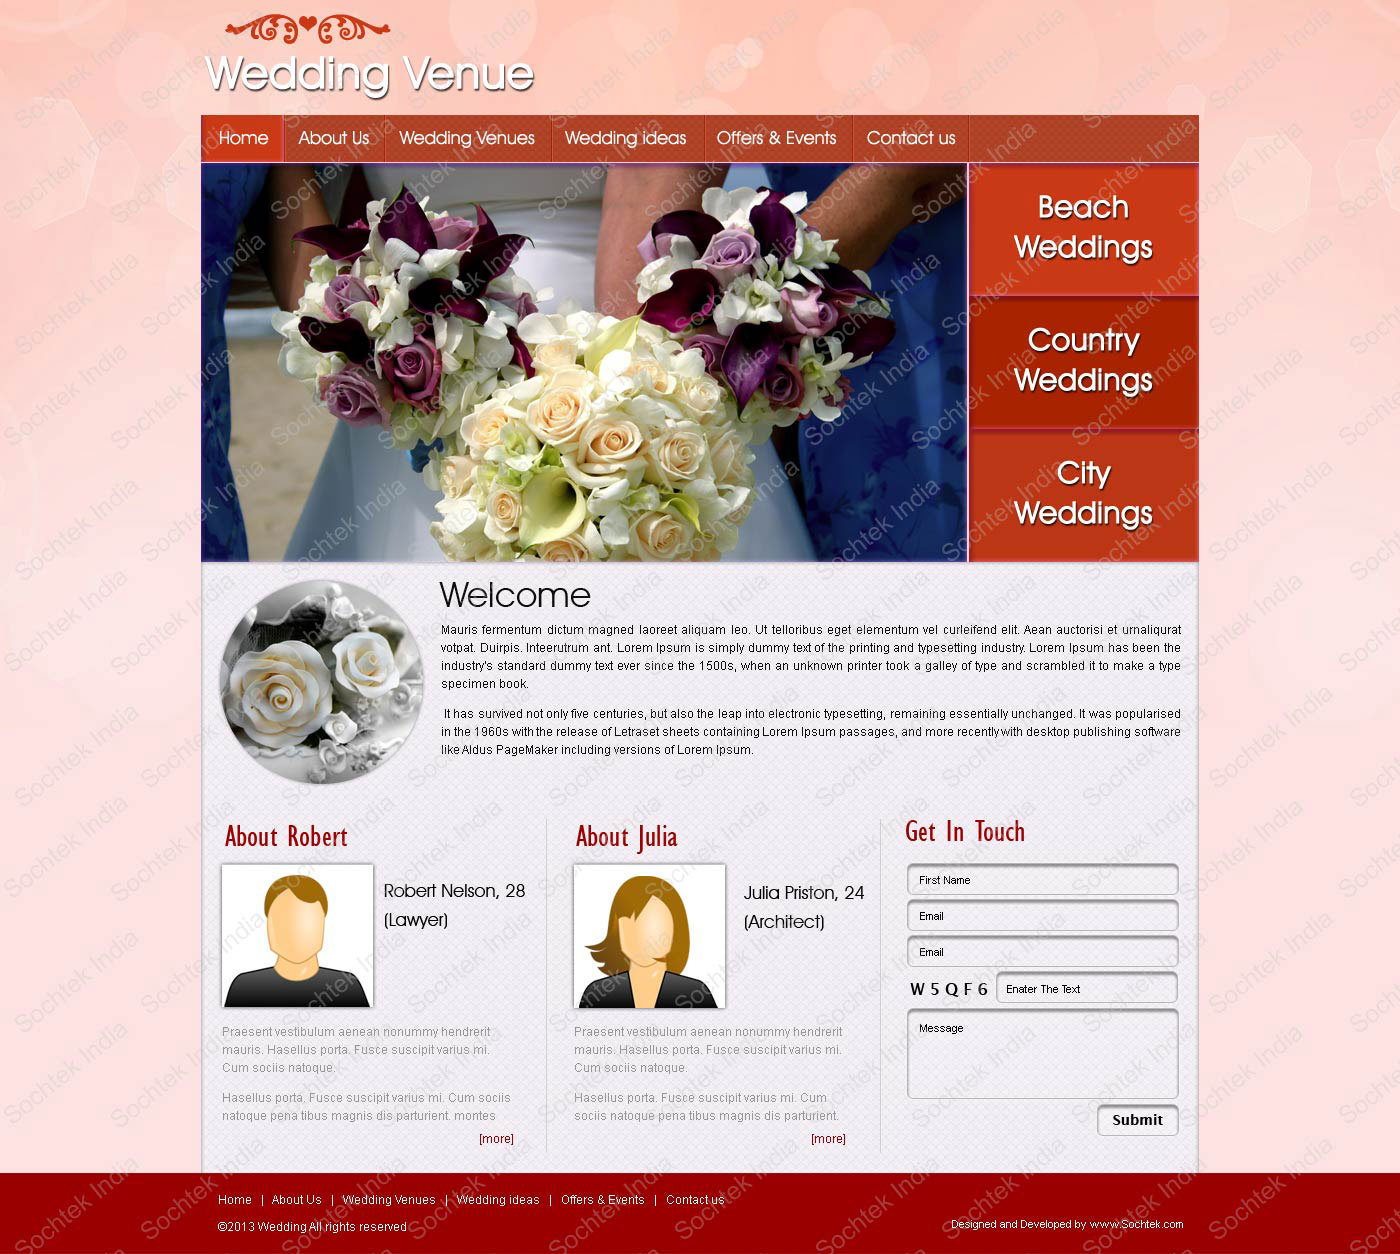 wedding-website-design1